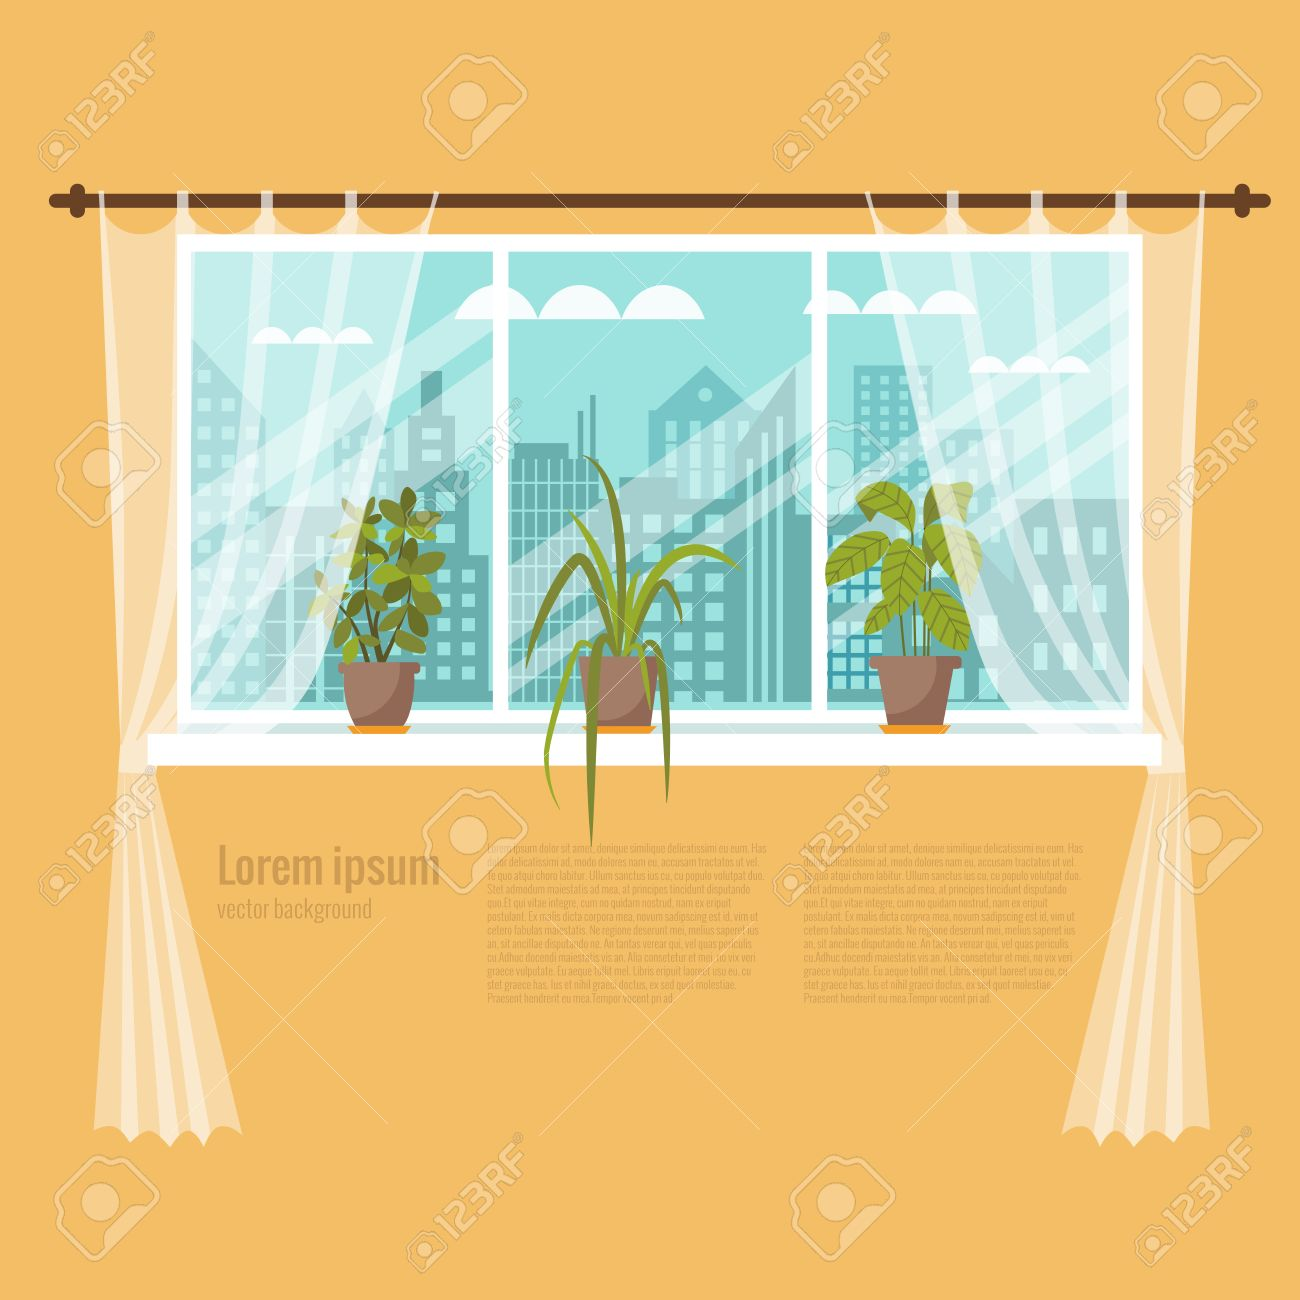 Colorful Flat Style Illustration Of Window With Curtains And ... for Window With Curtains Illustration  111ane